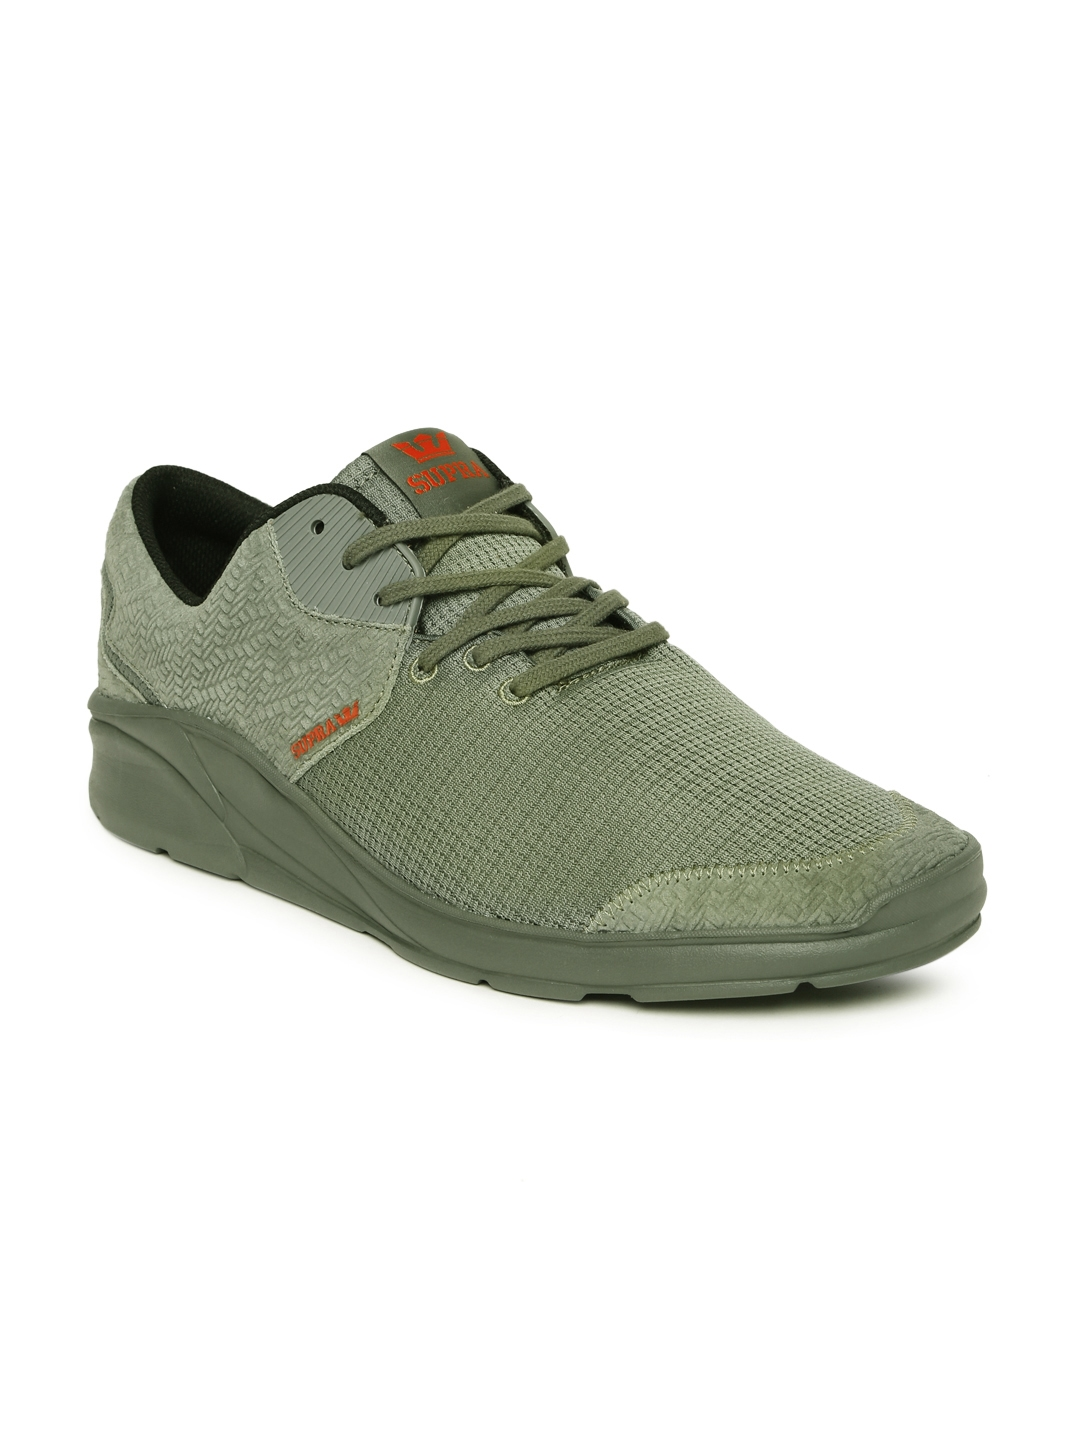 c577ba8cc448 Buy Supra Men Olive Green NOIZ Leather Sneakers - Casual Shoes for ...